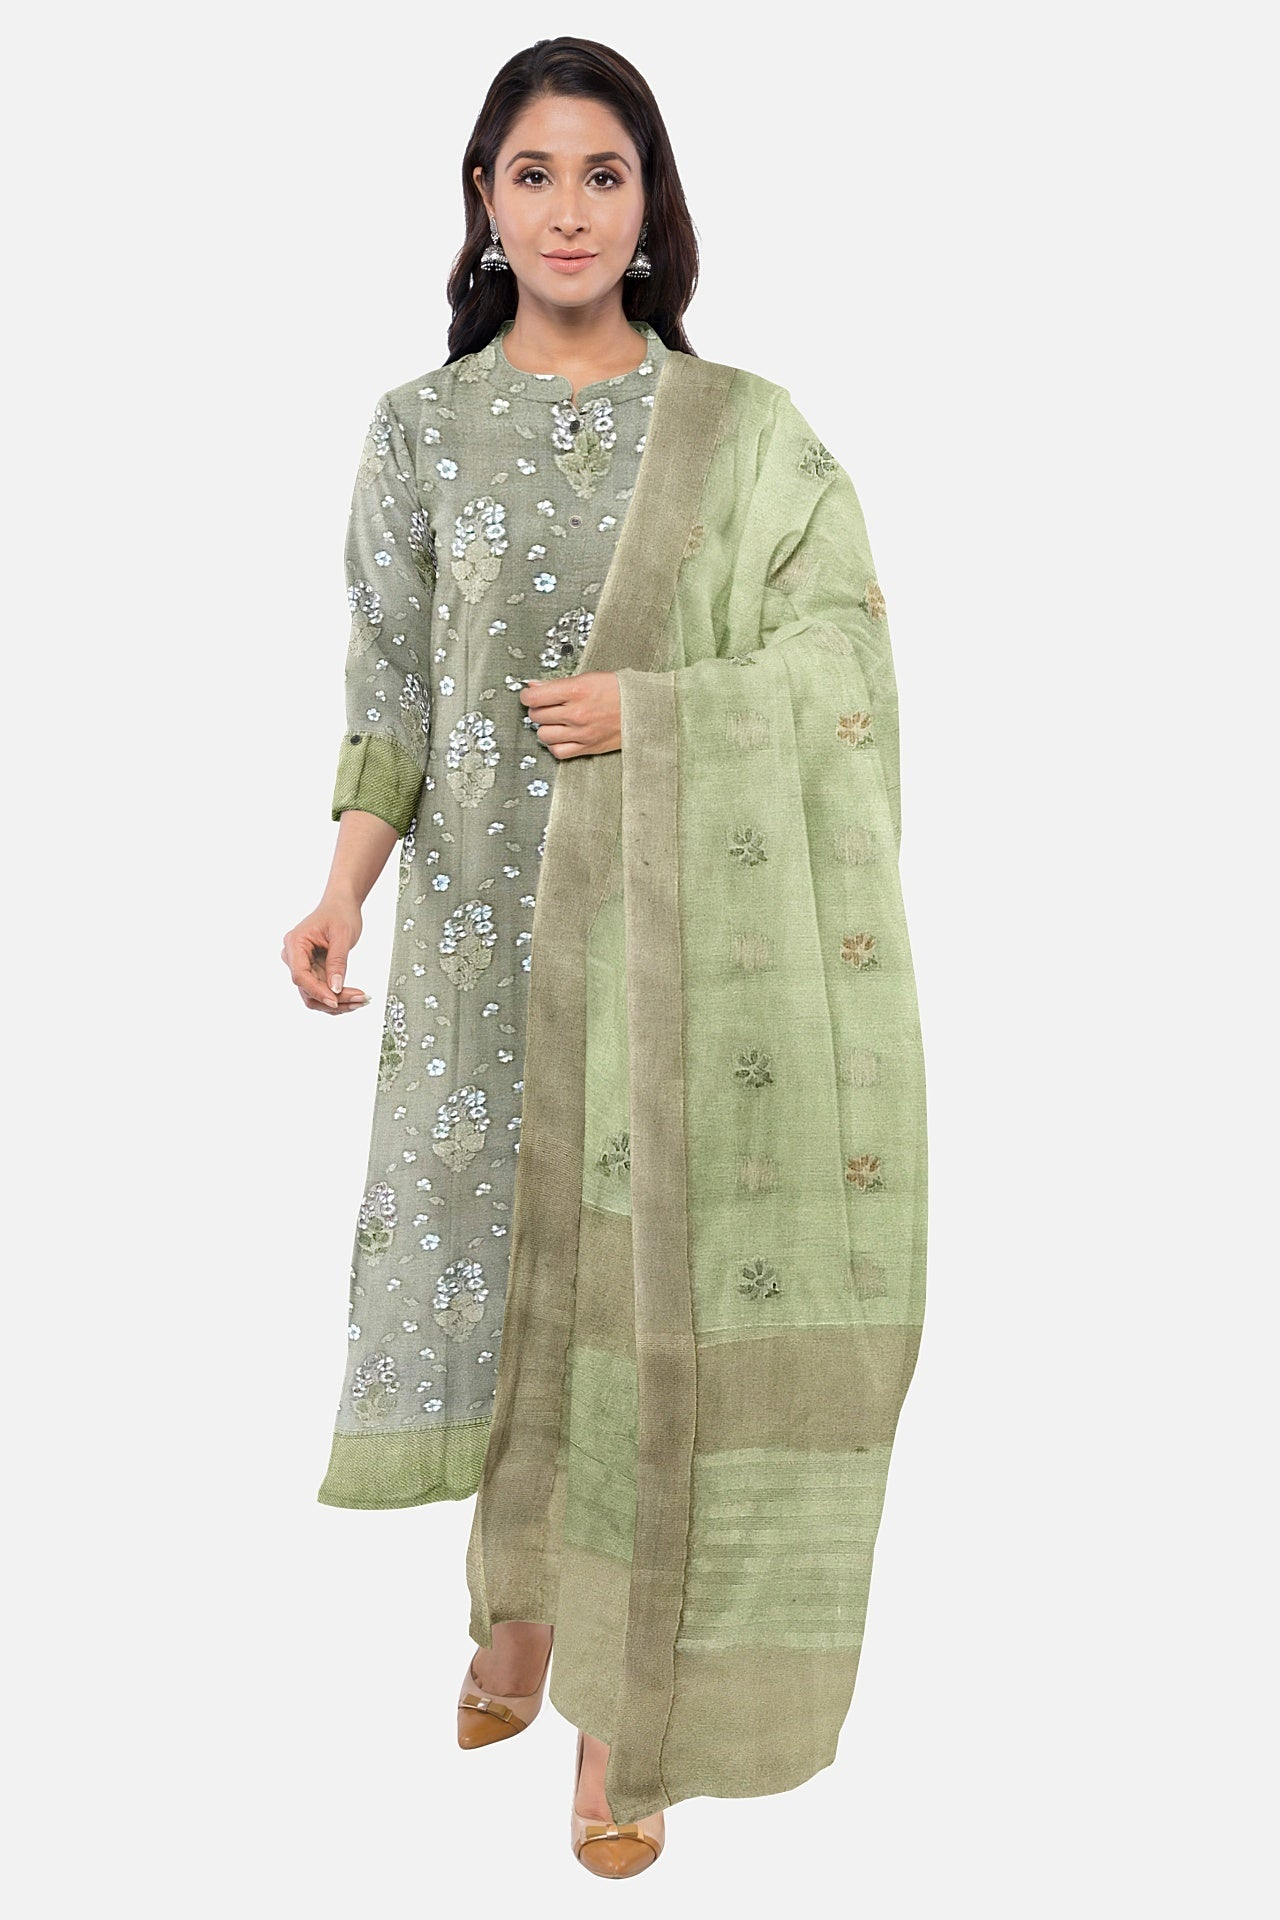 Pista Green Cotton Chanderi Suit Fabric Set (Set of 3)